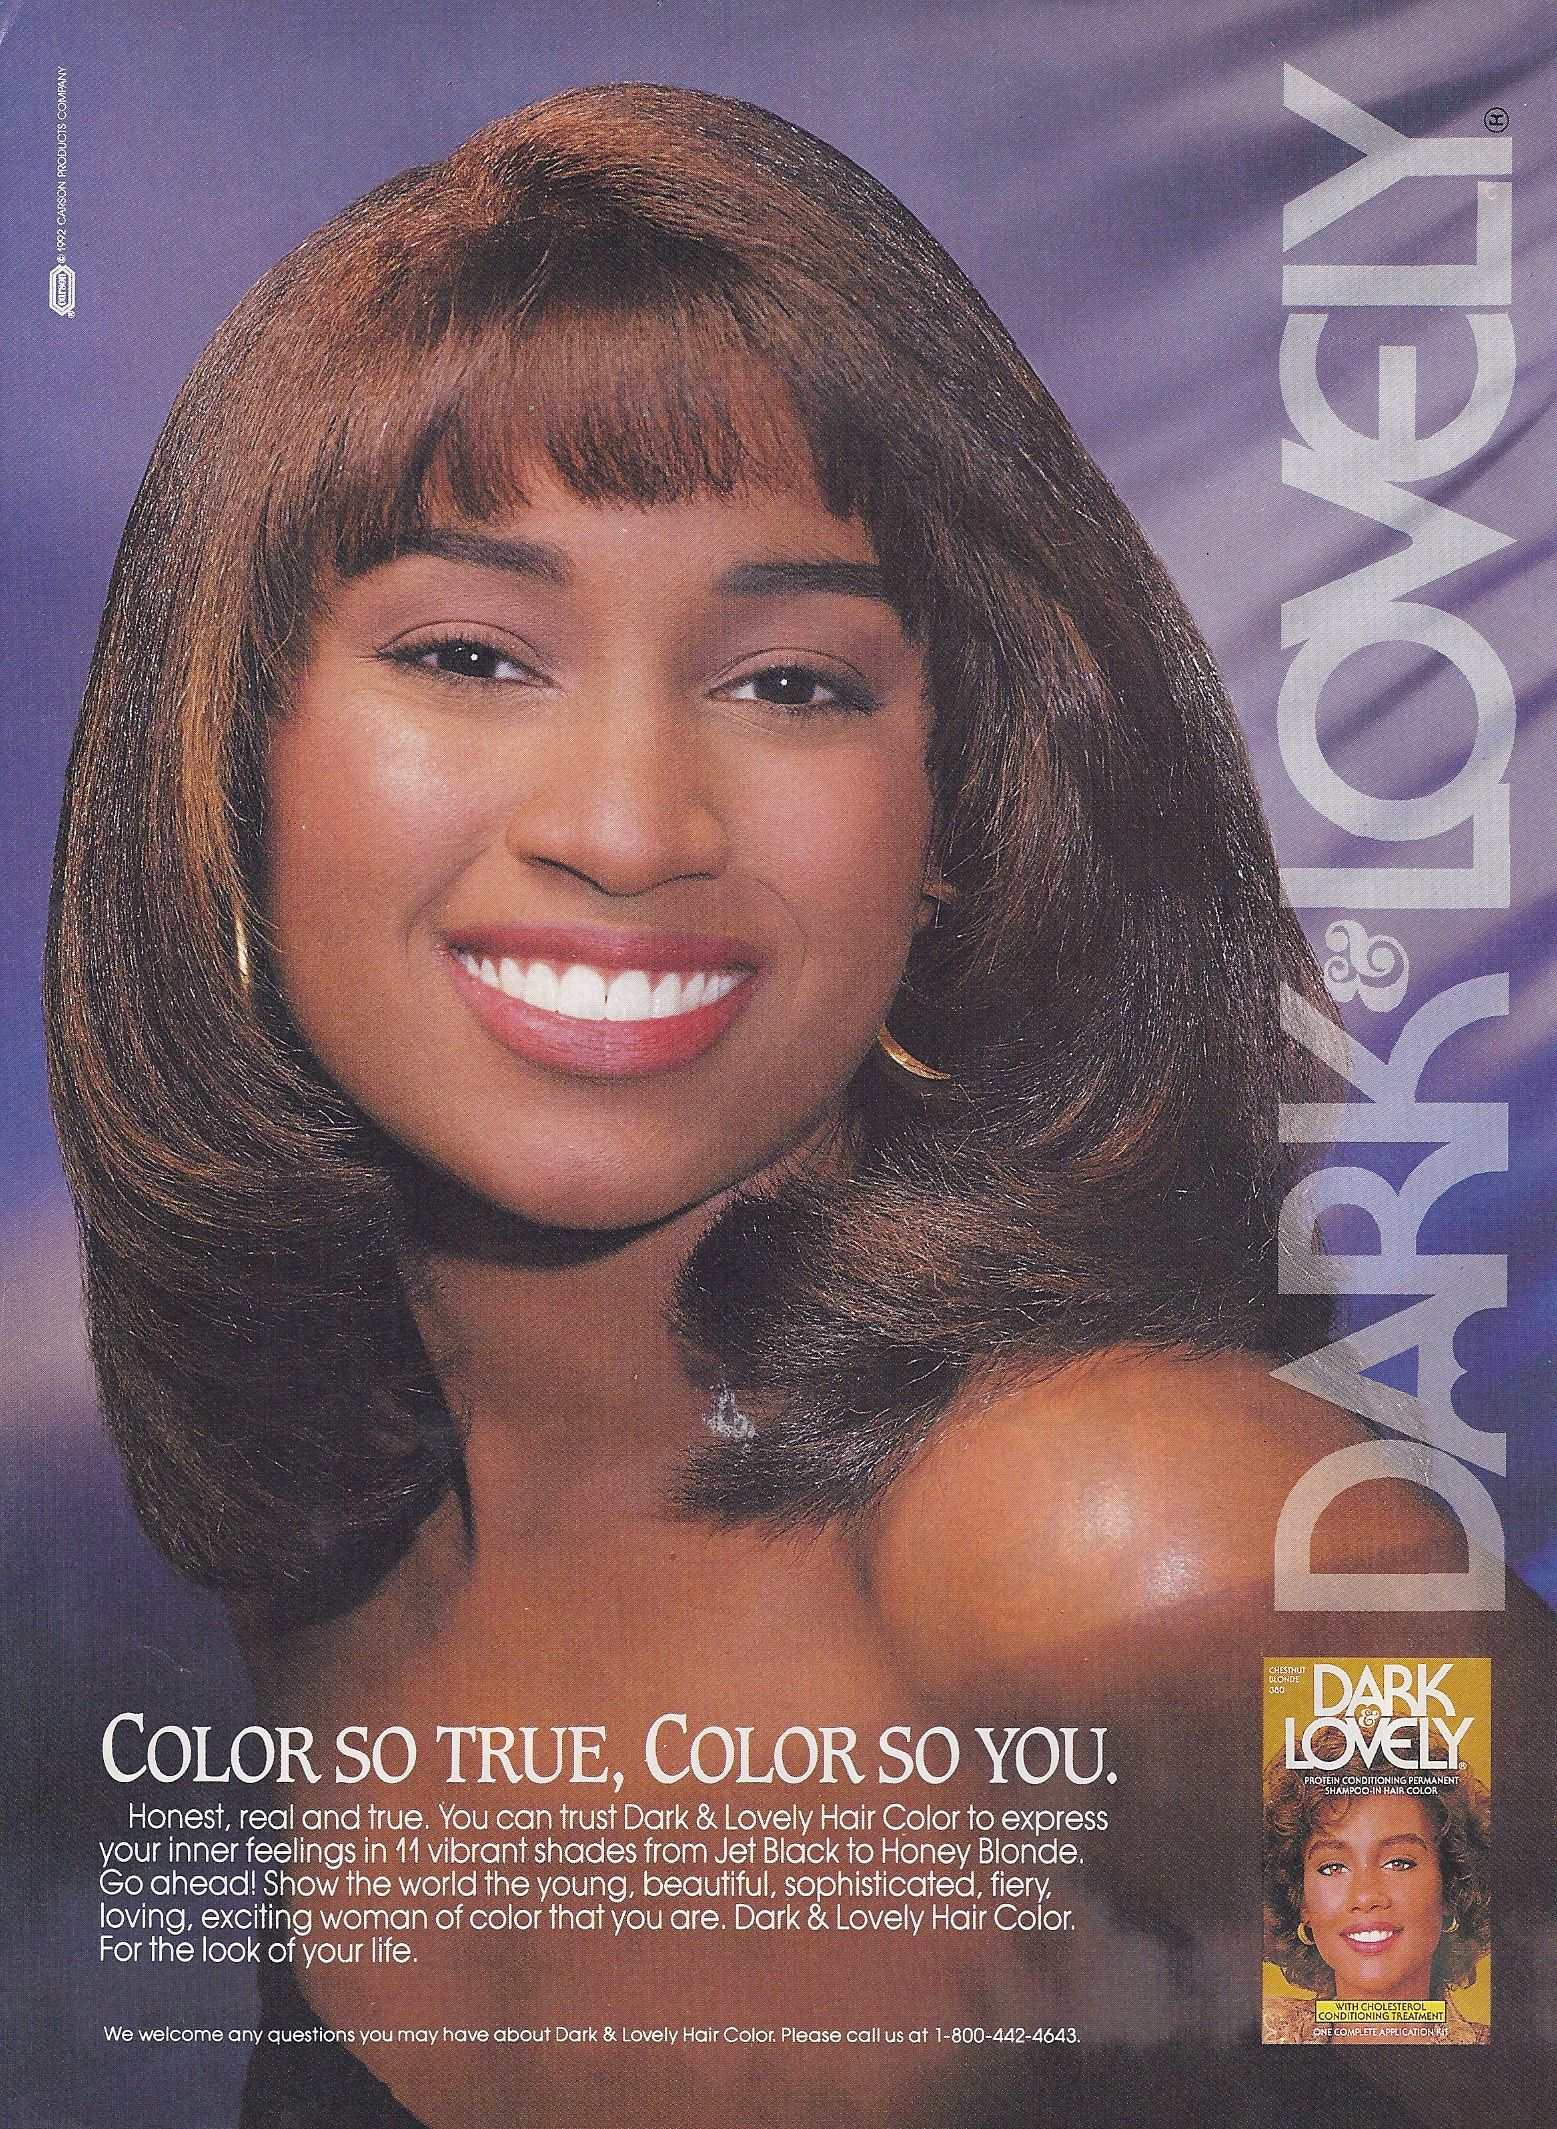 Dark Lovely Hair Ad I Want My Hair To Look Like This Sooo Bad Back In The Day Beauty Ad Black Beauties Vintage Cosmetics